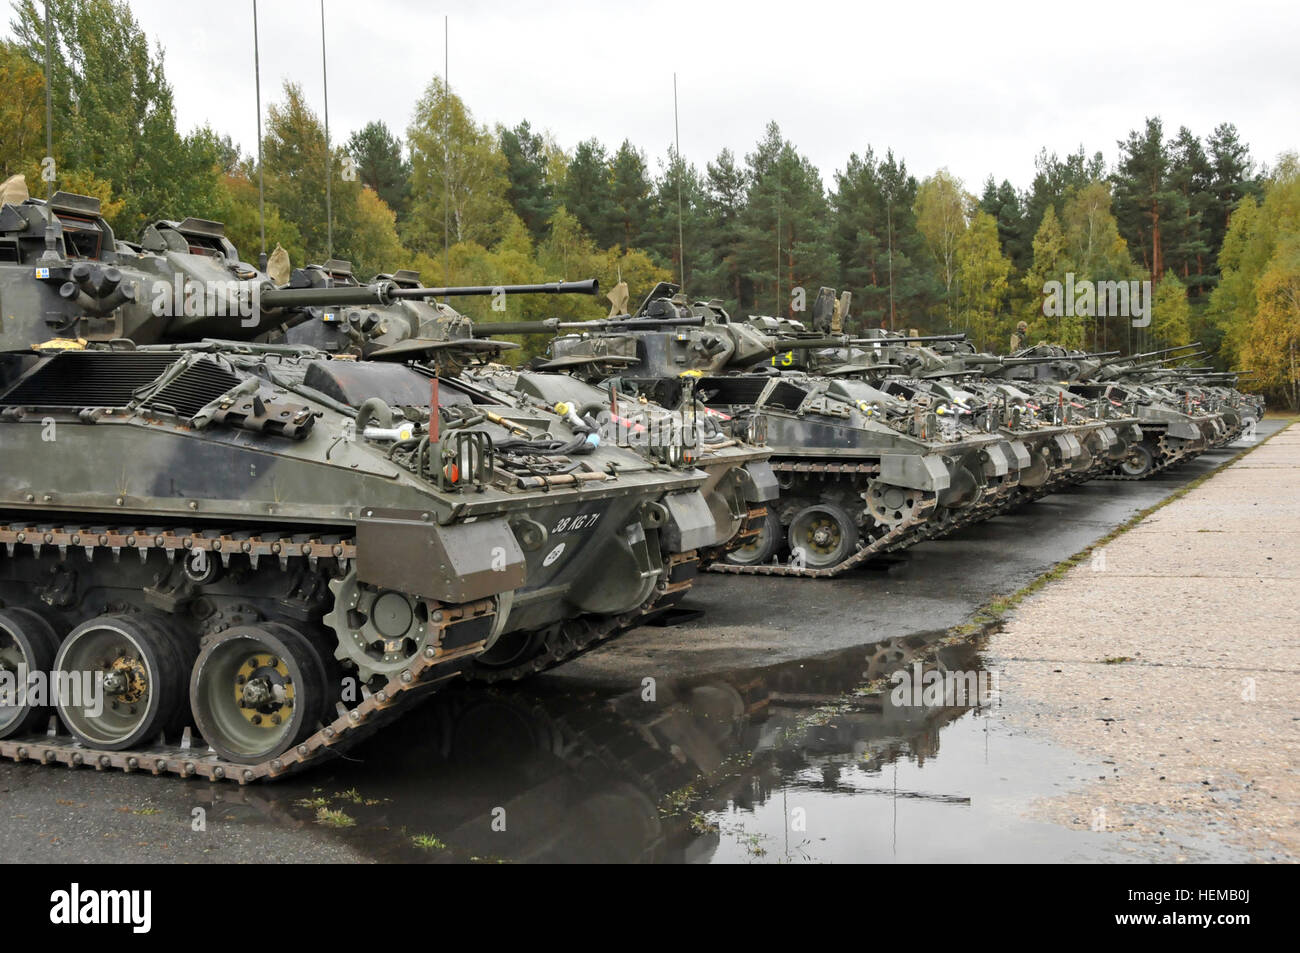 The United Kingdom's Bravo Company of the 3rd Mercian line-up Warrior Infantry Fighting Vehicle's at Grafenwoehr - Stock Image